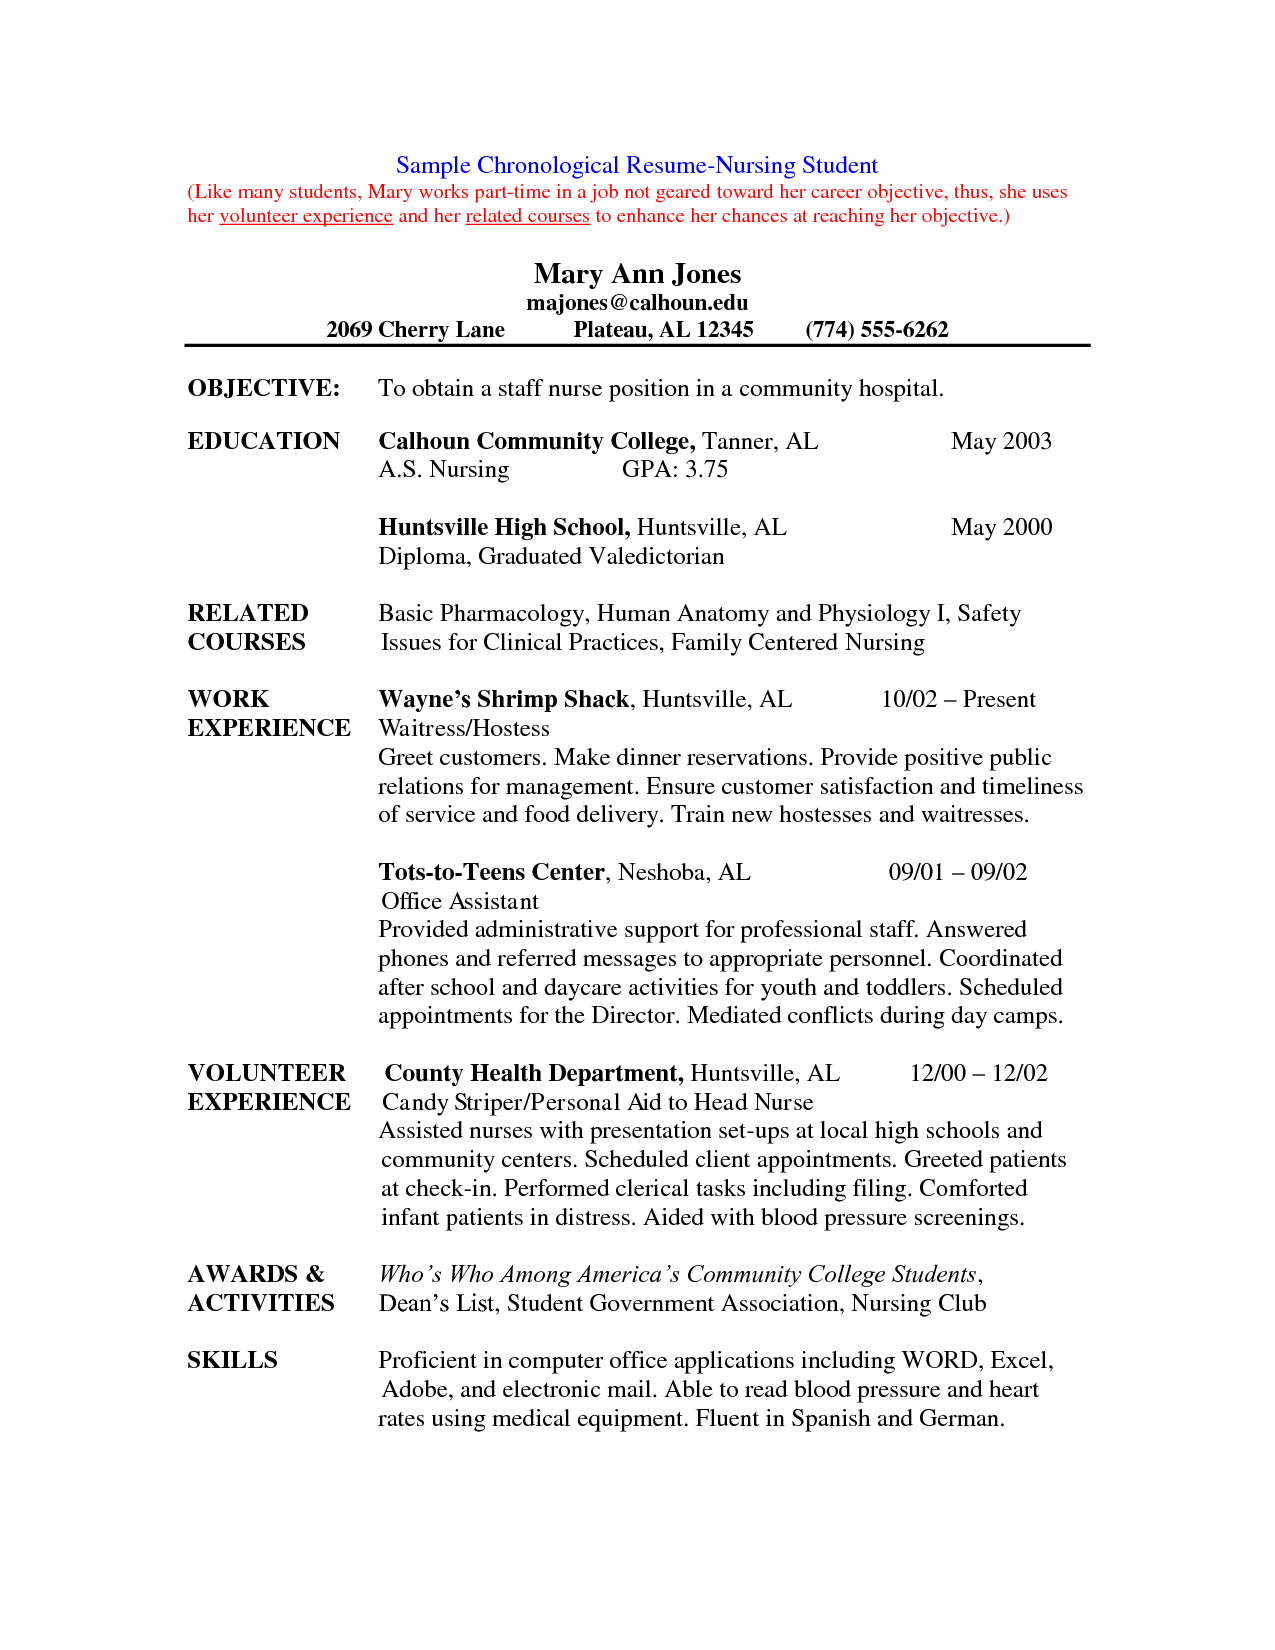 cover letters for nursing job application pdf